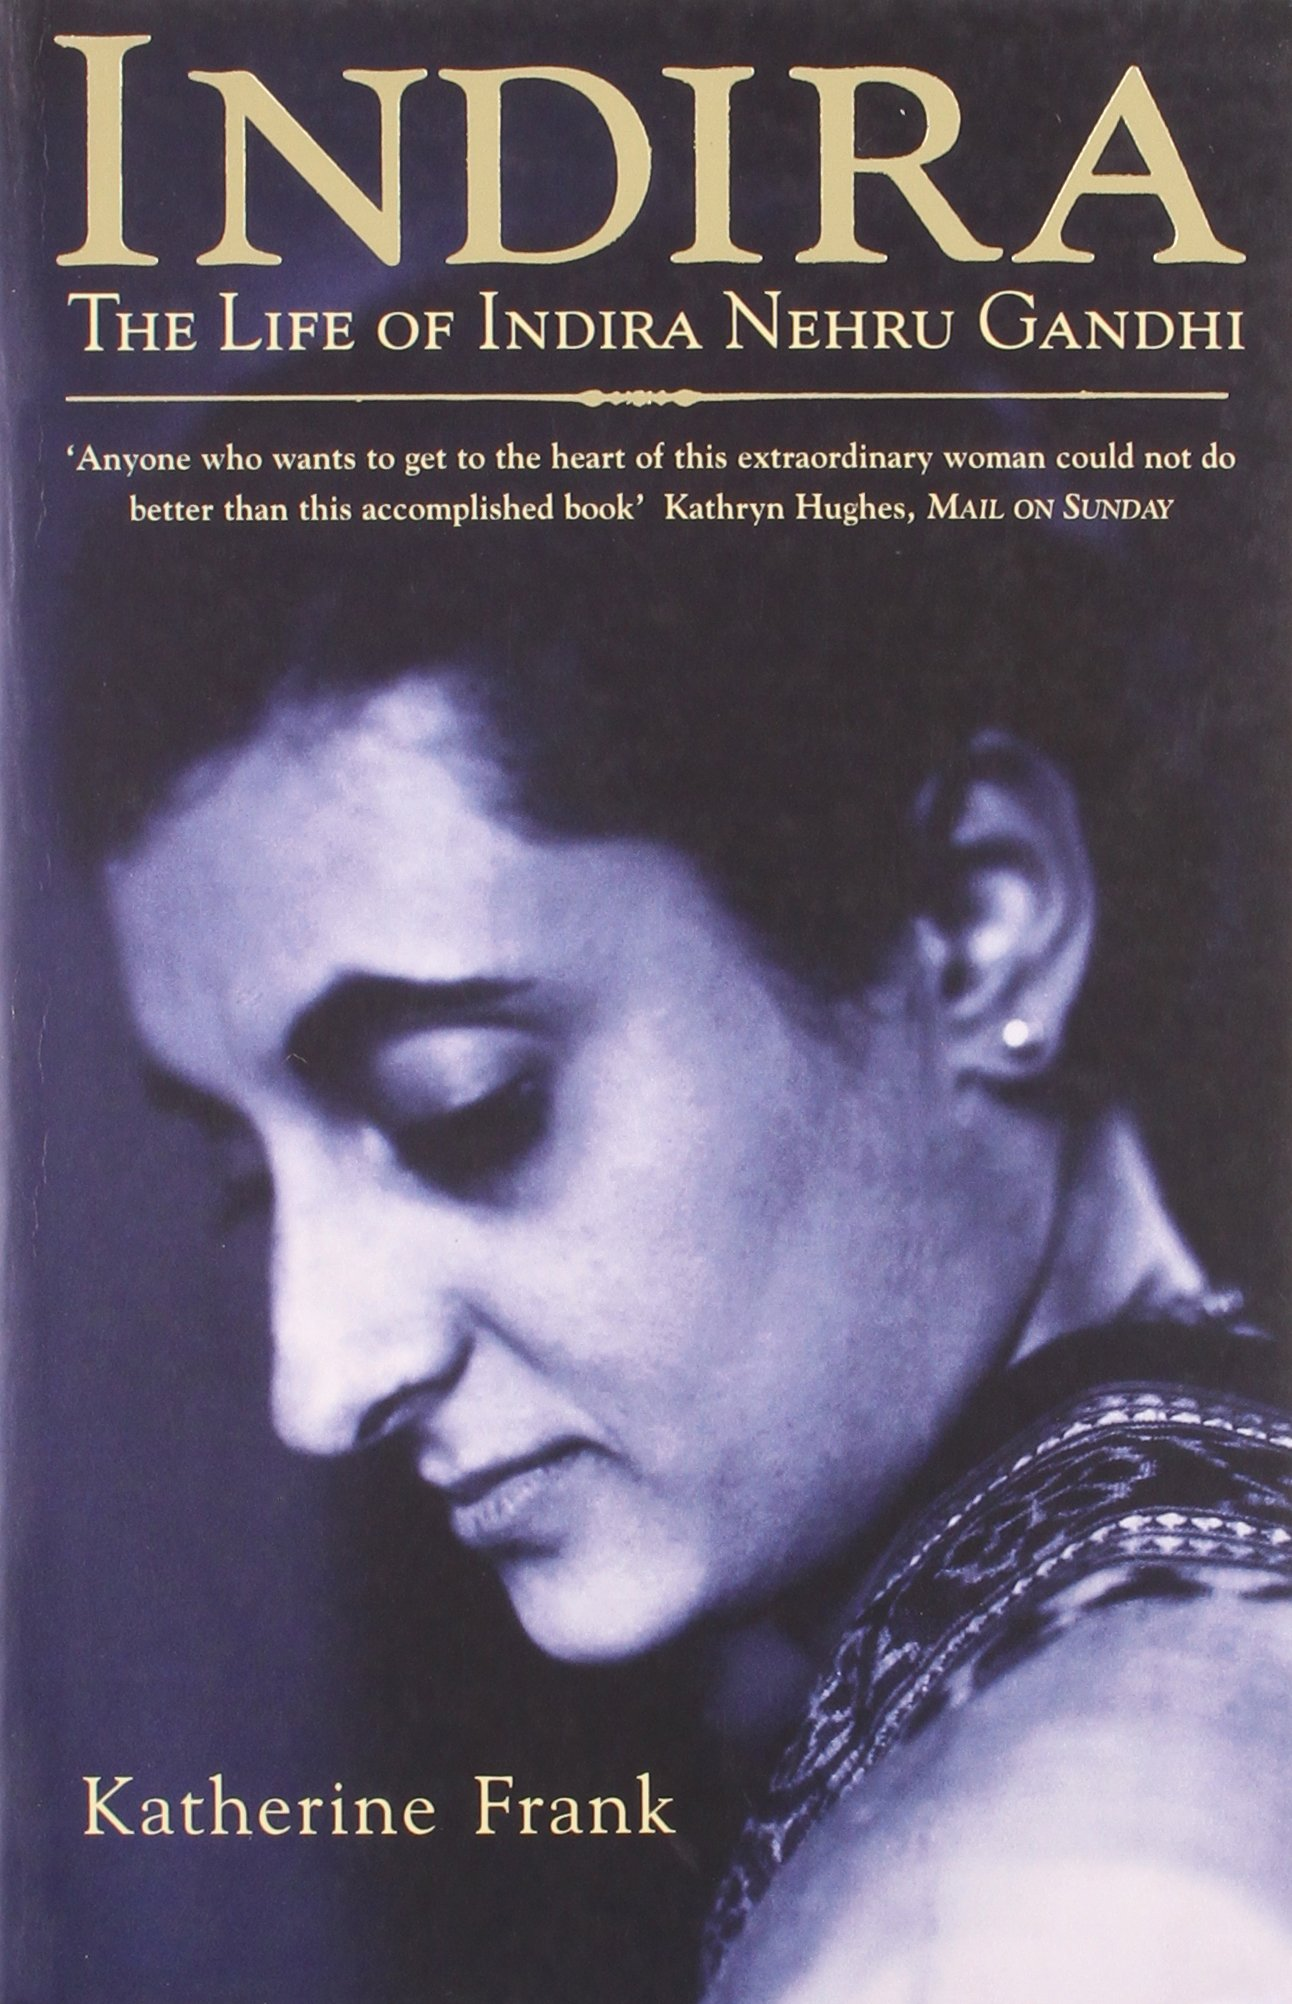 autobiography of indira gandhi